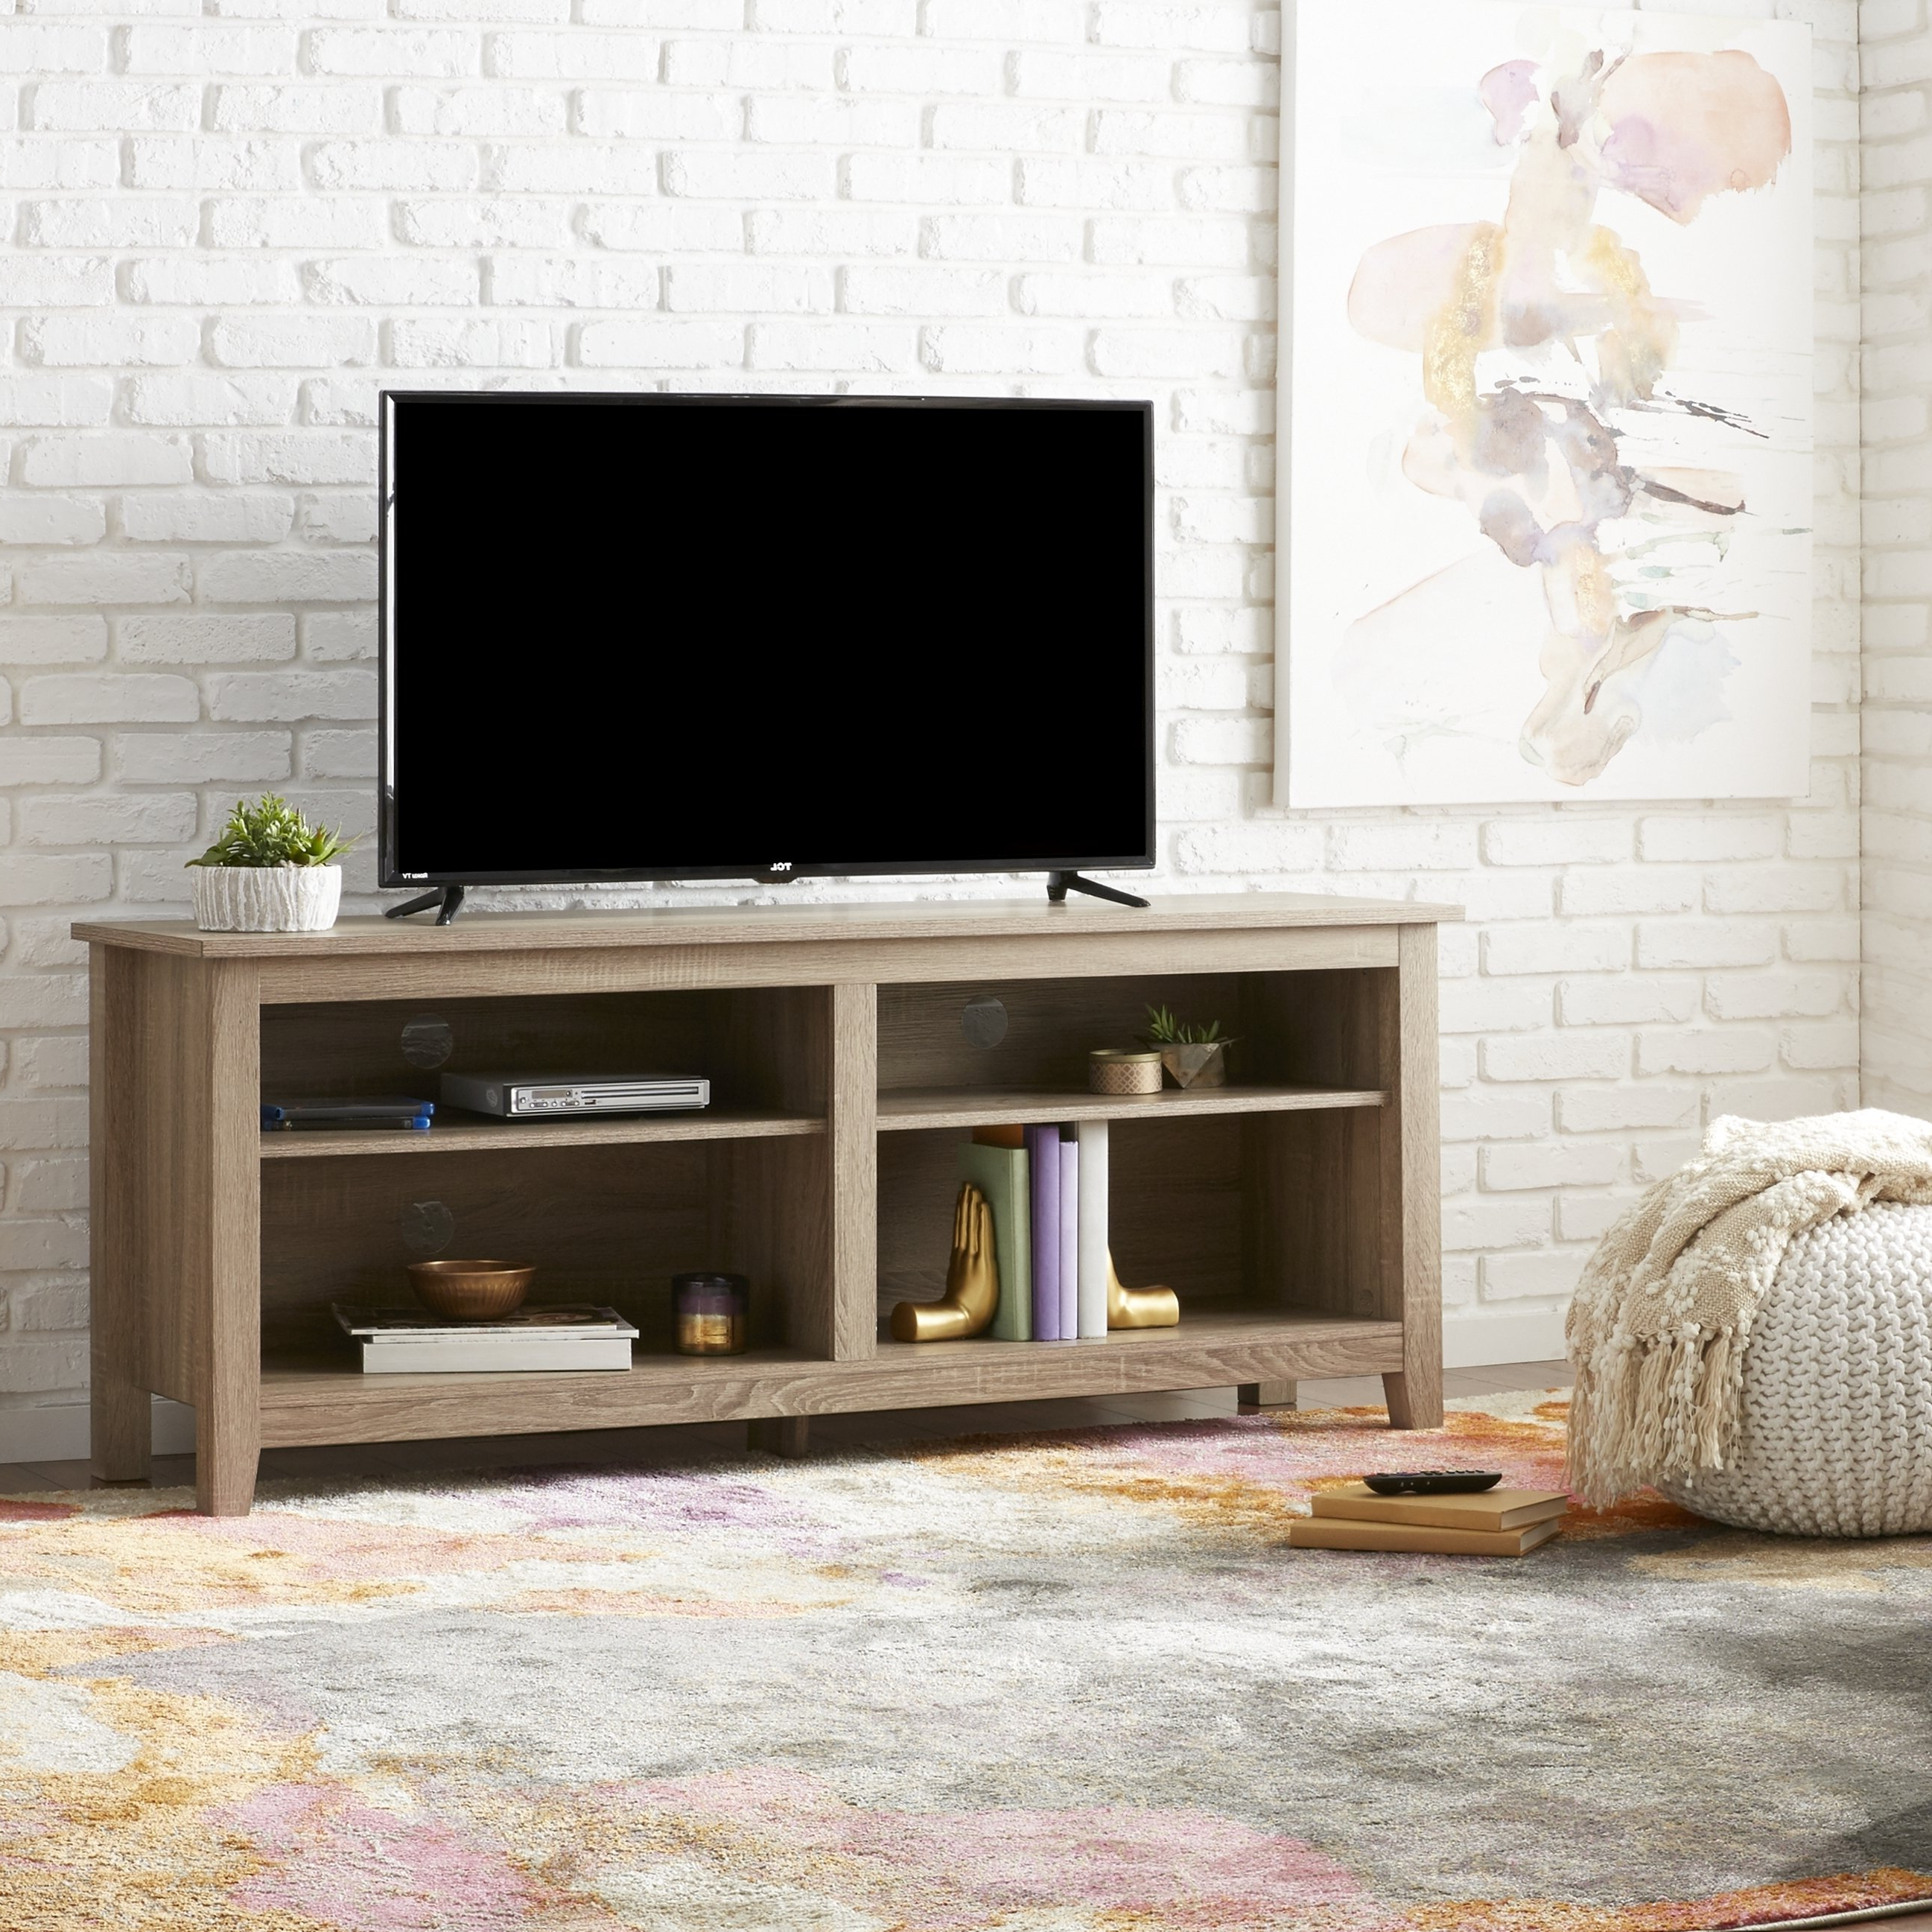 Shop 58 Inch Driftwood Tv Stand – Free Shipping On Orders Over $45 Intended For Abbot 60 Inch Tv Stands (View 11 of 20)